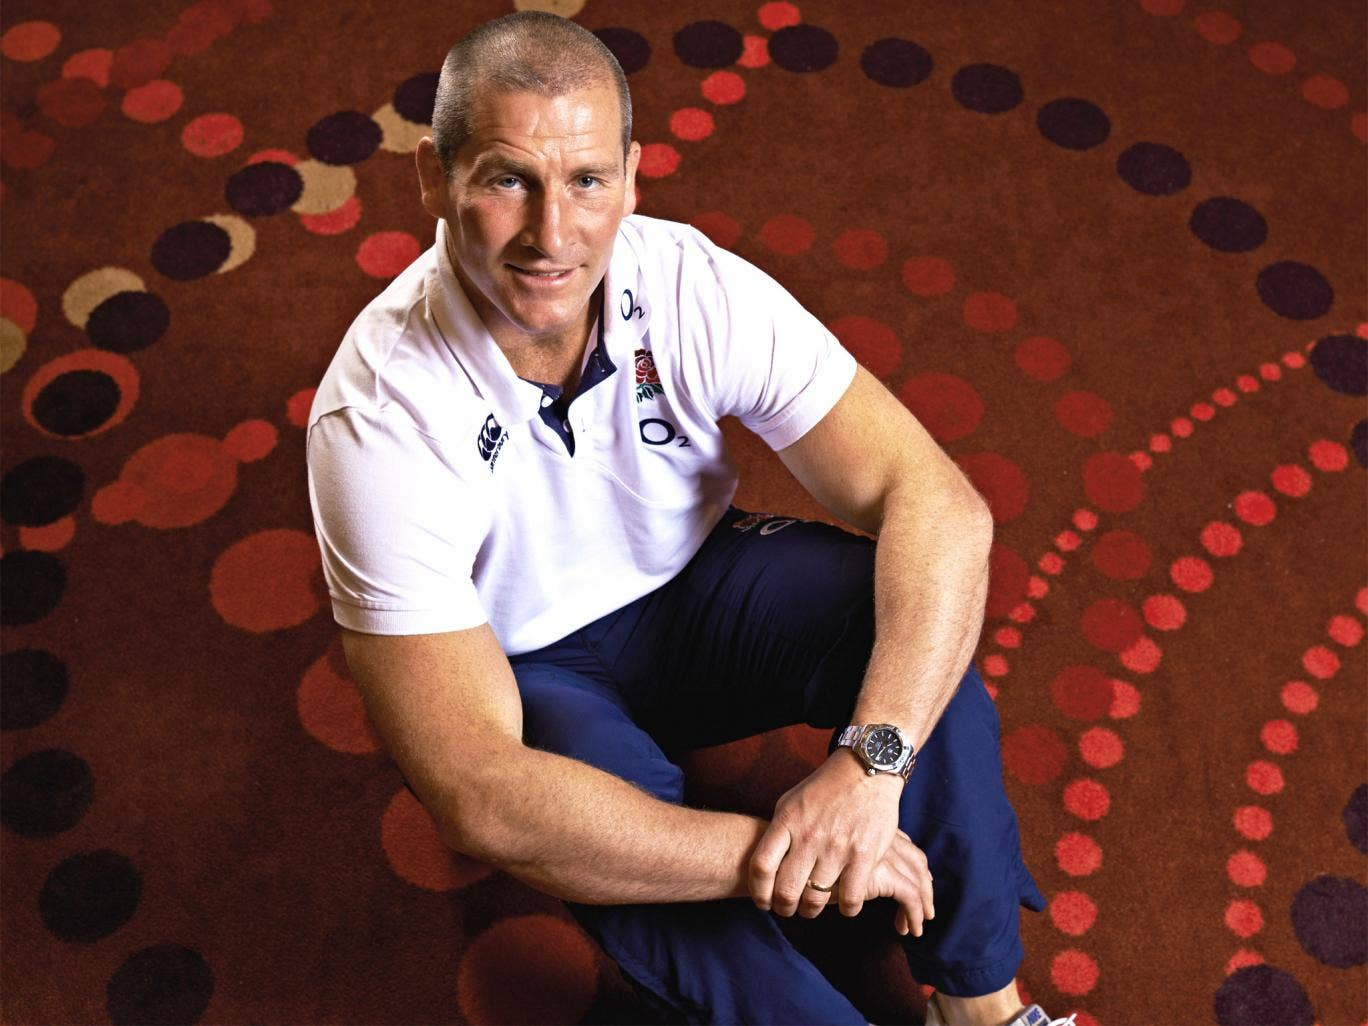 Stuart Lancaster says he would like to carry on beyond the 2015 World Cup